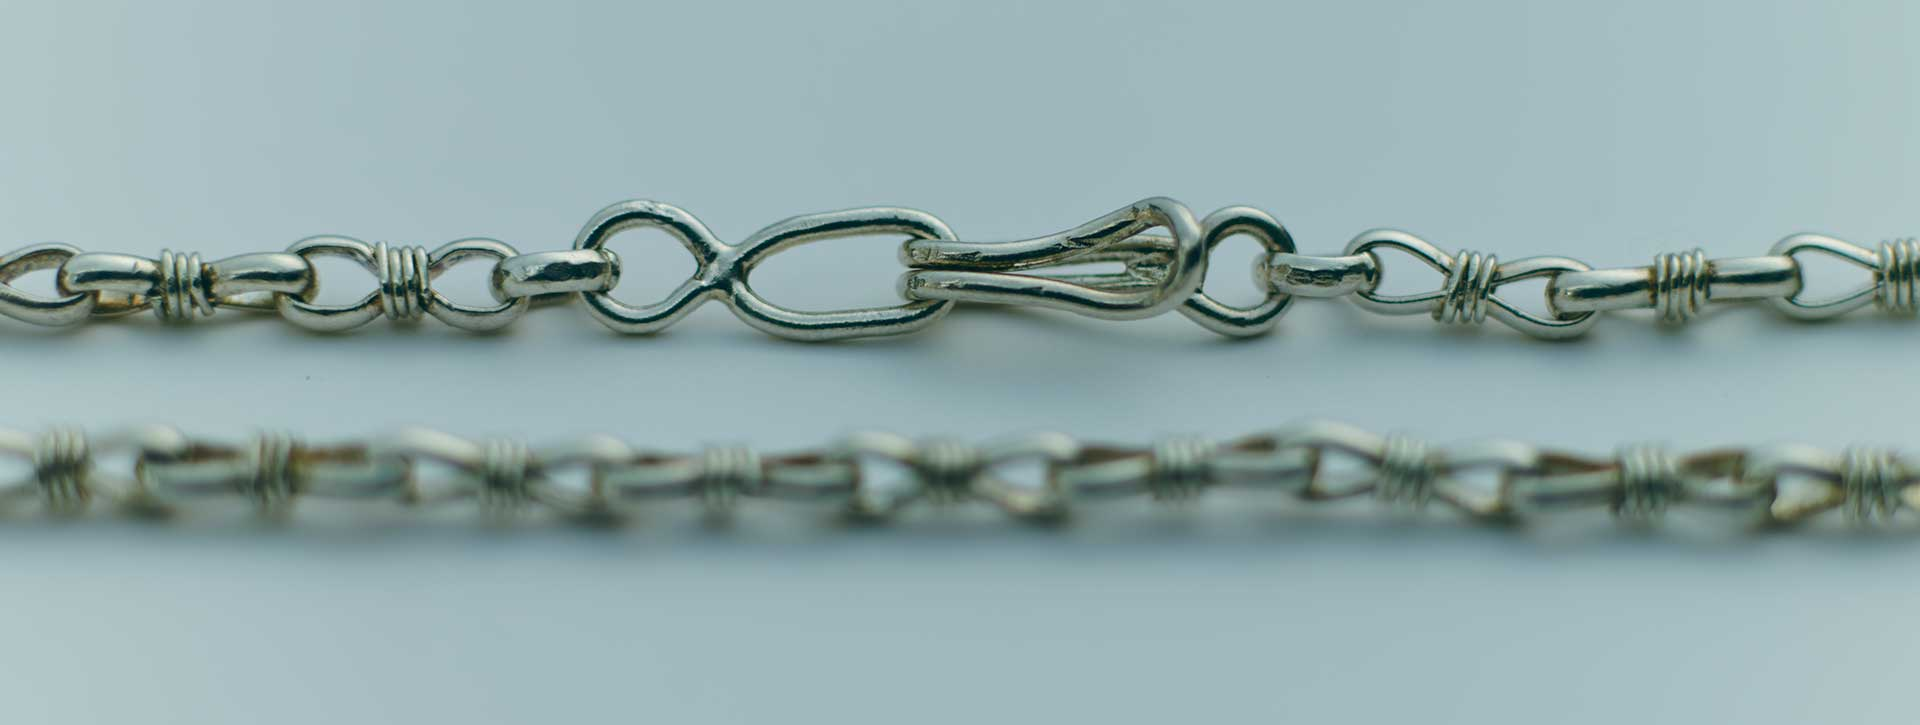 wrapped link chain necklace